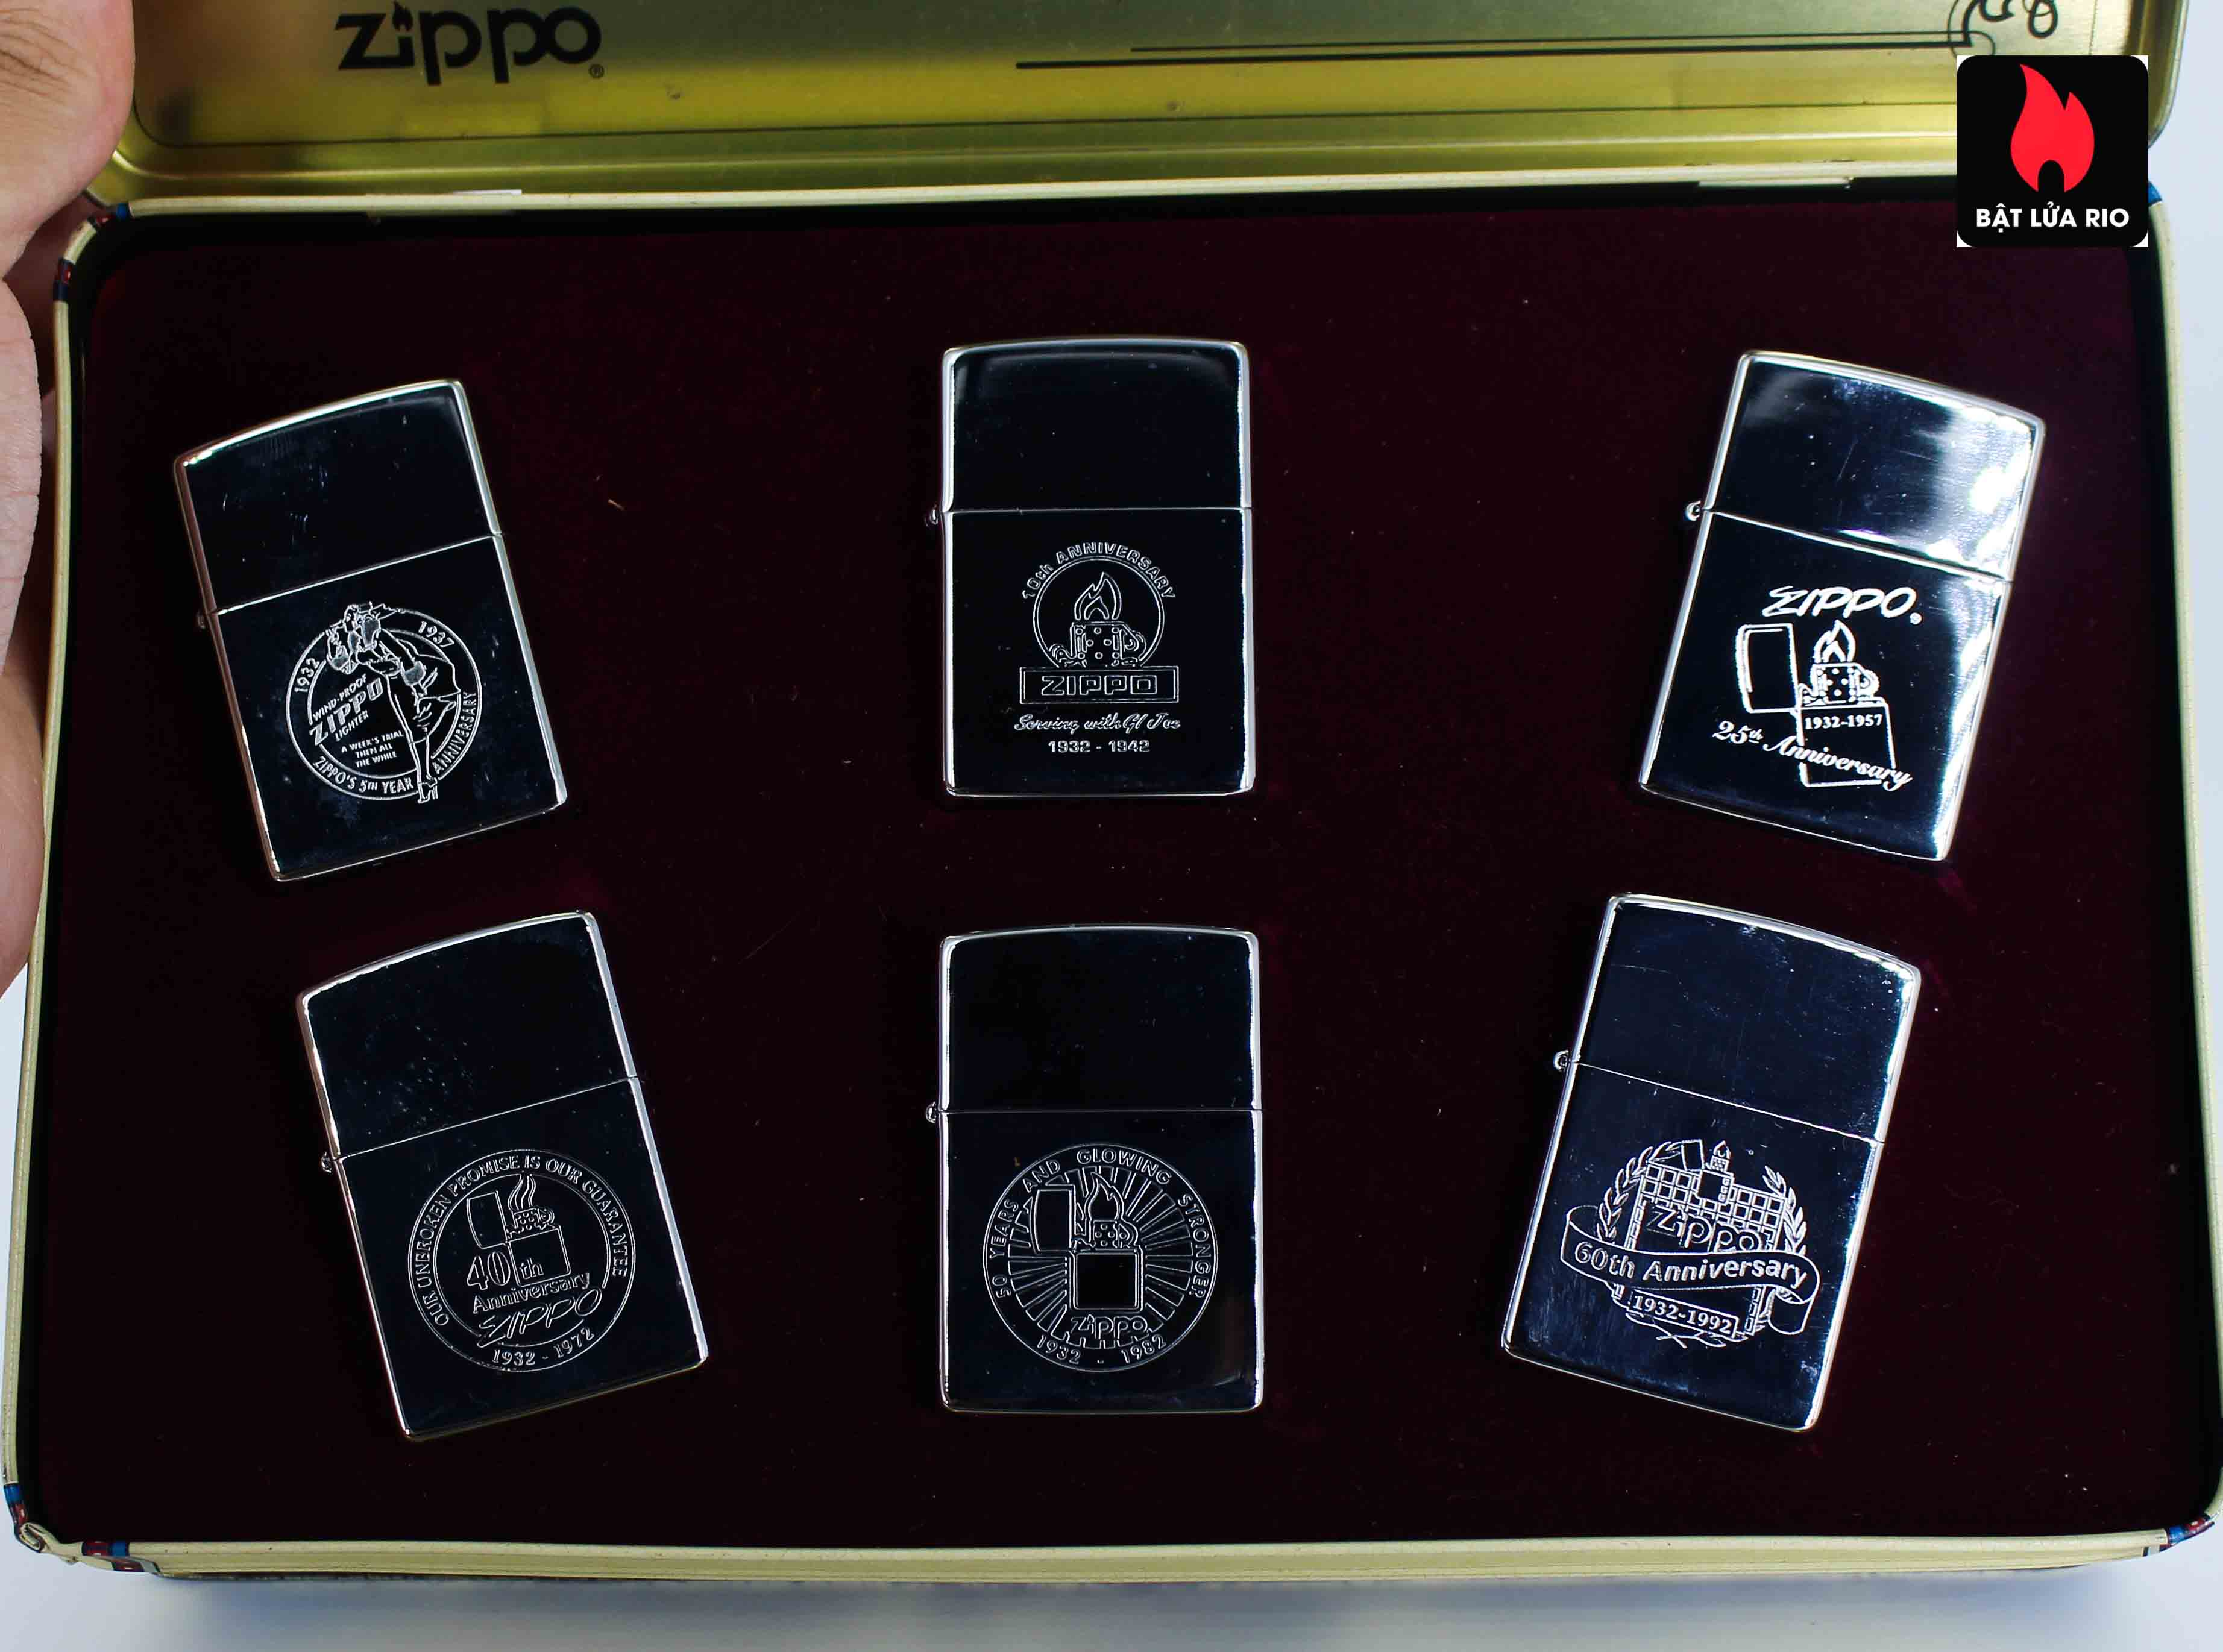 Zippo Set 1992 - 60th Anniversary Complete Set - 1992 Collectors Edition 4